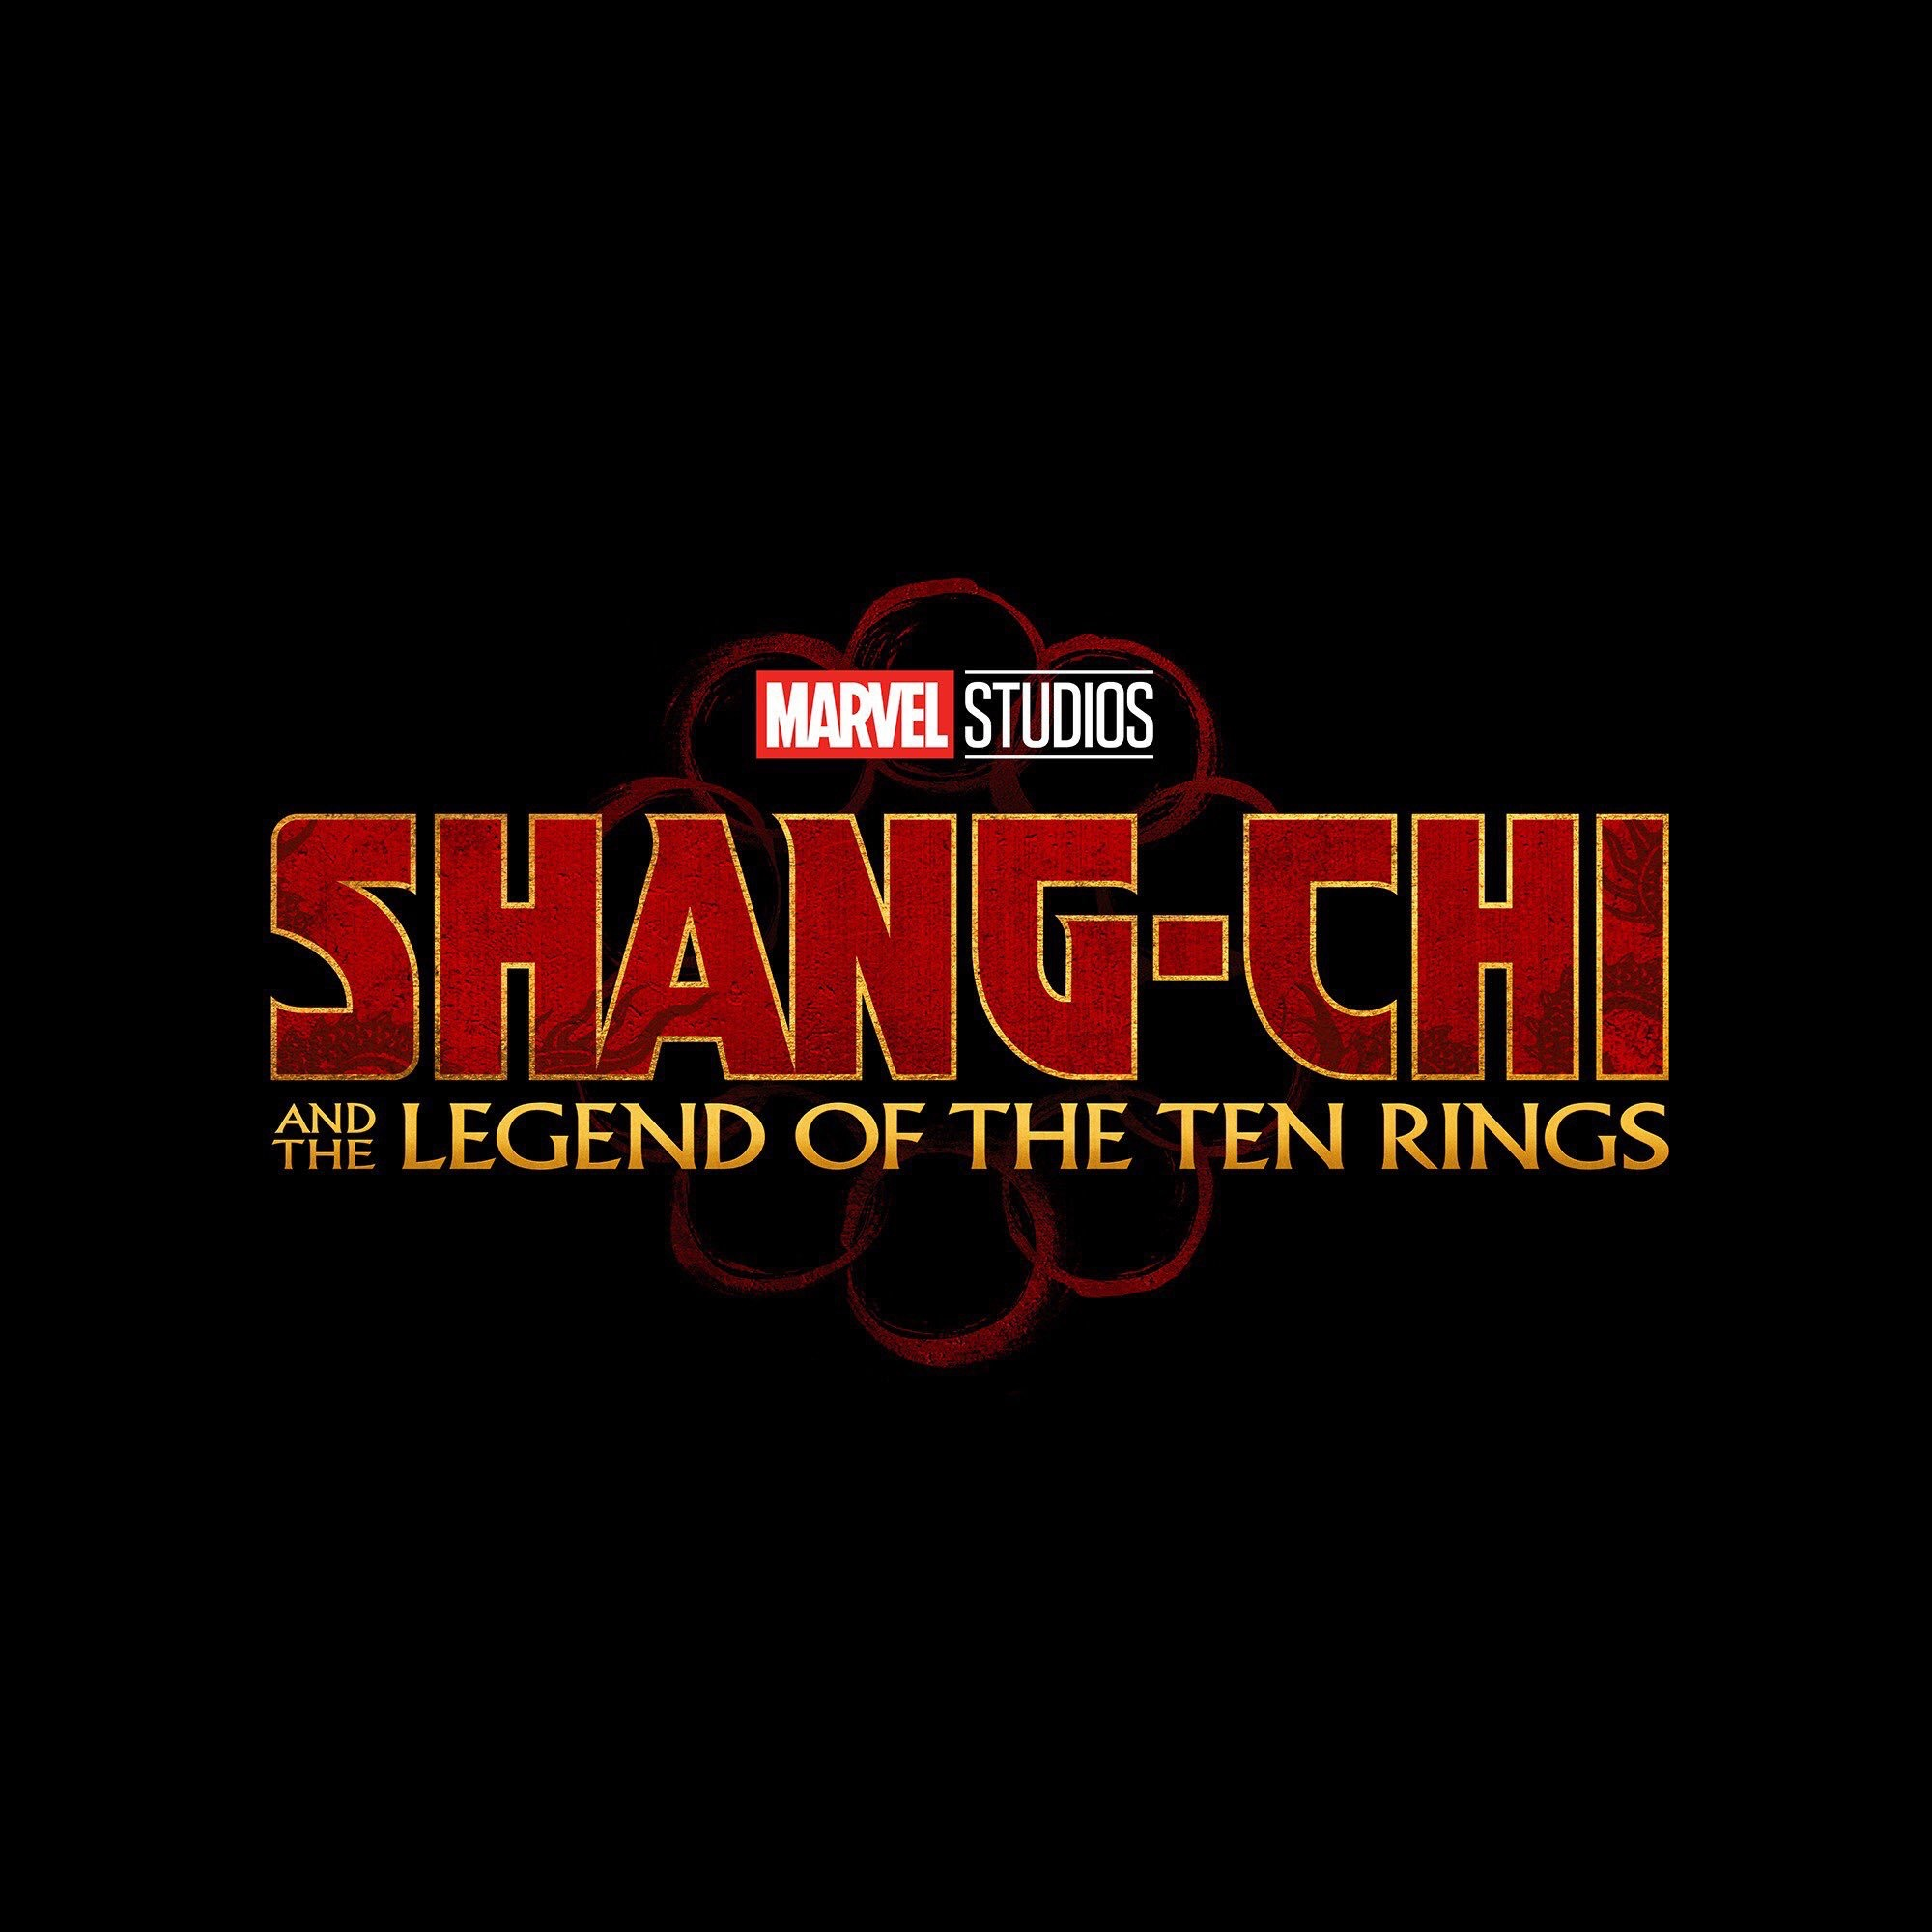 Shang-Chi and The Legends of the Ten Rings (Marvel Studios)